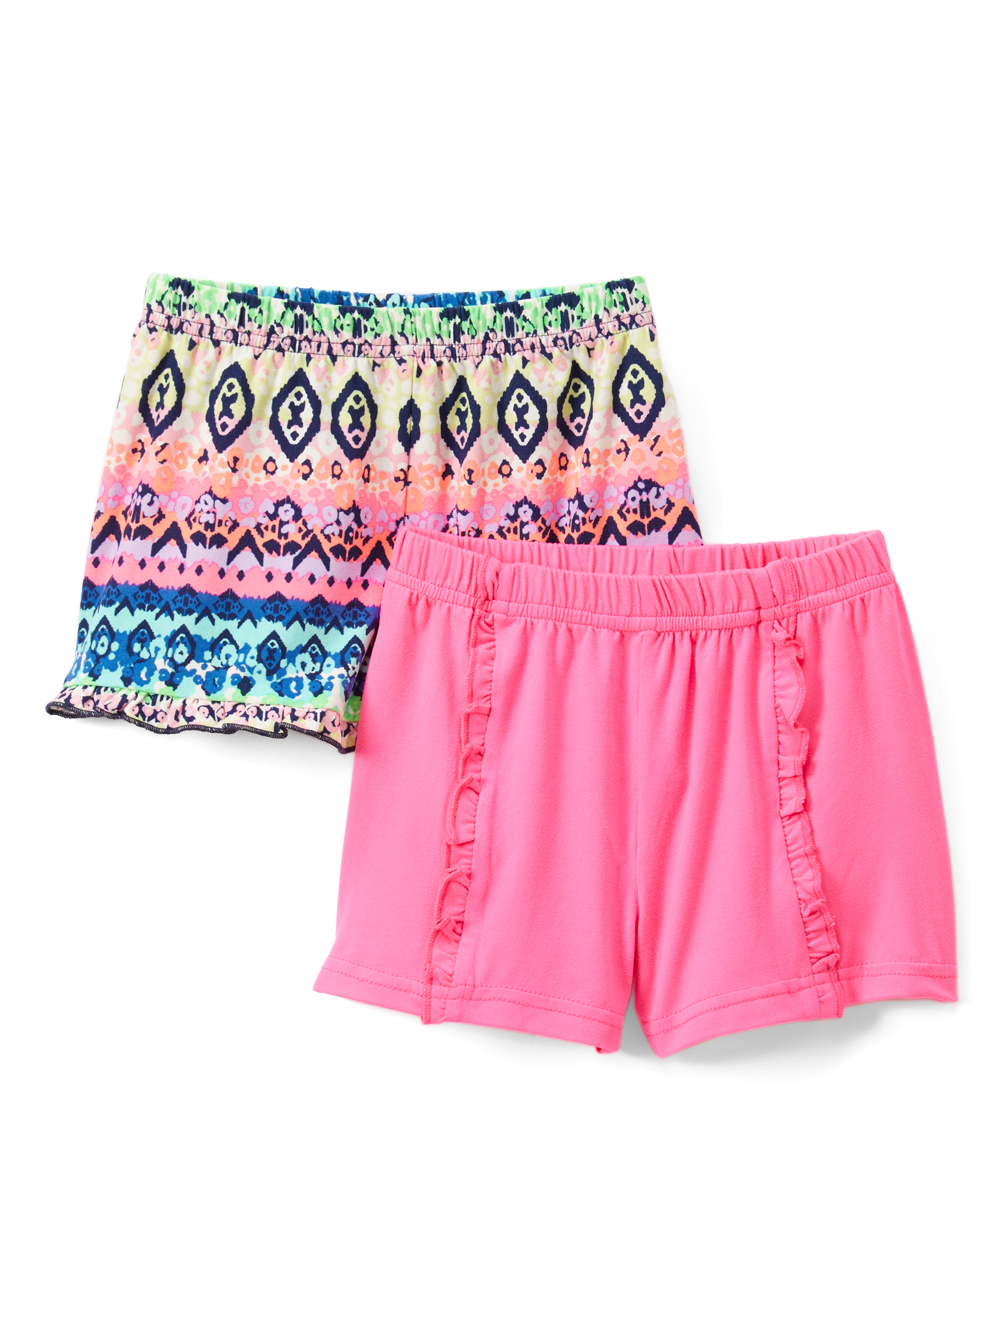 Solid and Printed Ruffle Shorts, 2-pack (Toddler Girls)